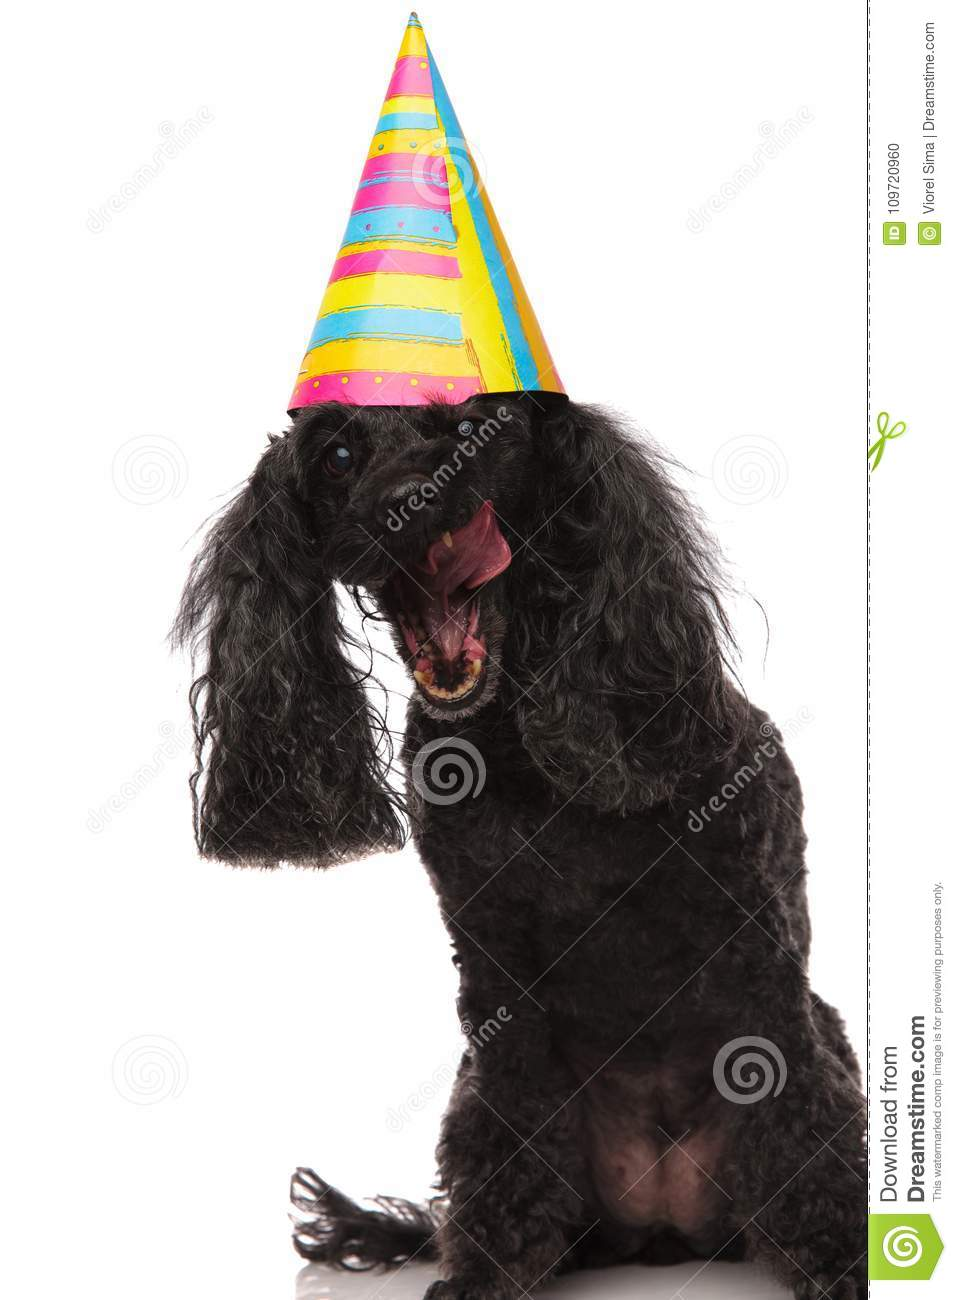 Stupendous Eager Birthday Poodle Is Ready To Eat The Cake Stock Photo Image Funny Birthday Cards Online Aeocydamsfinfo